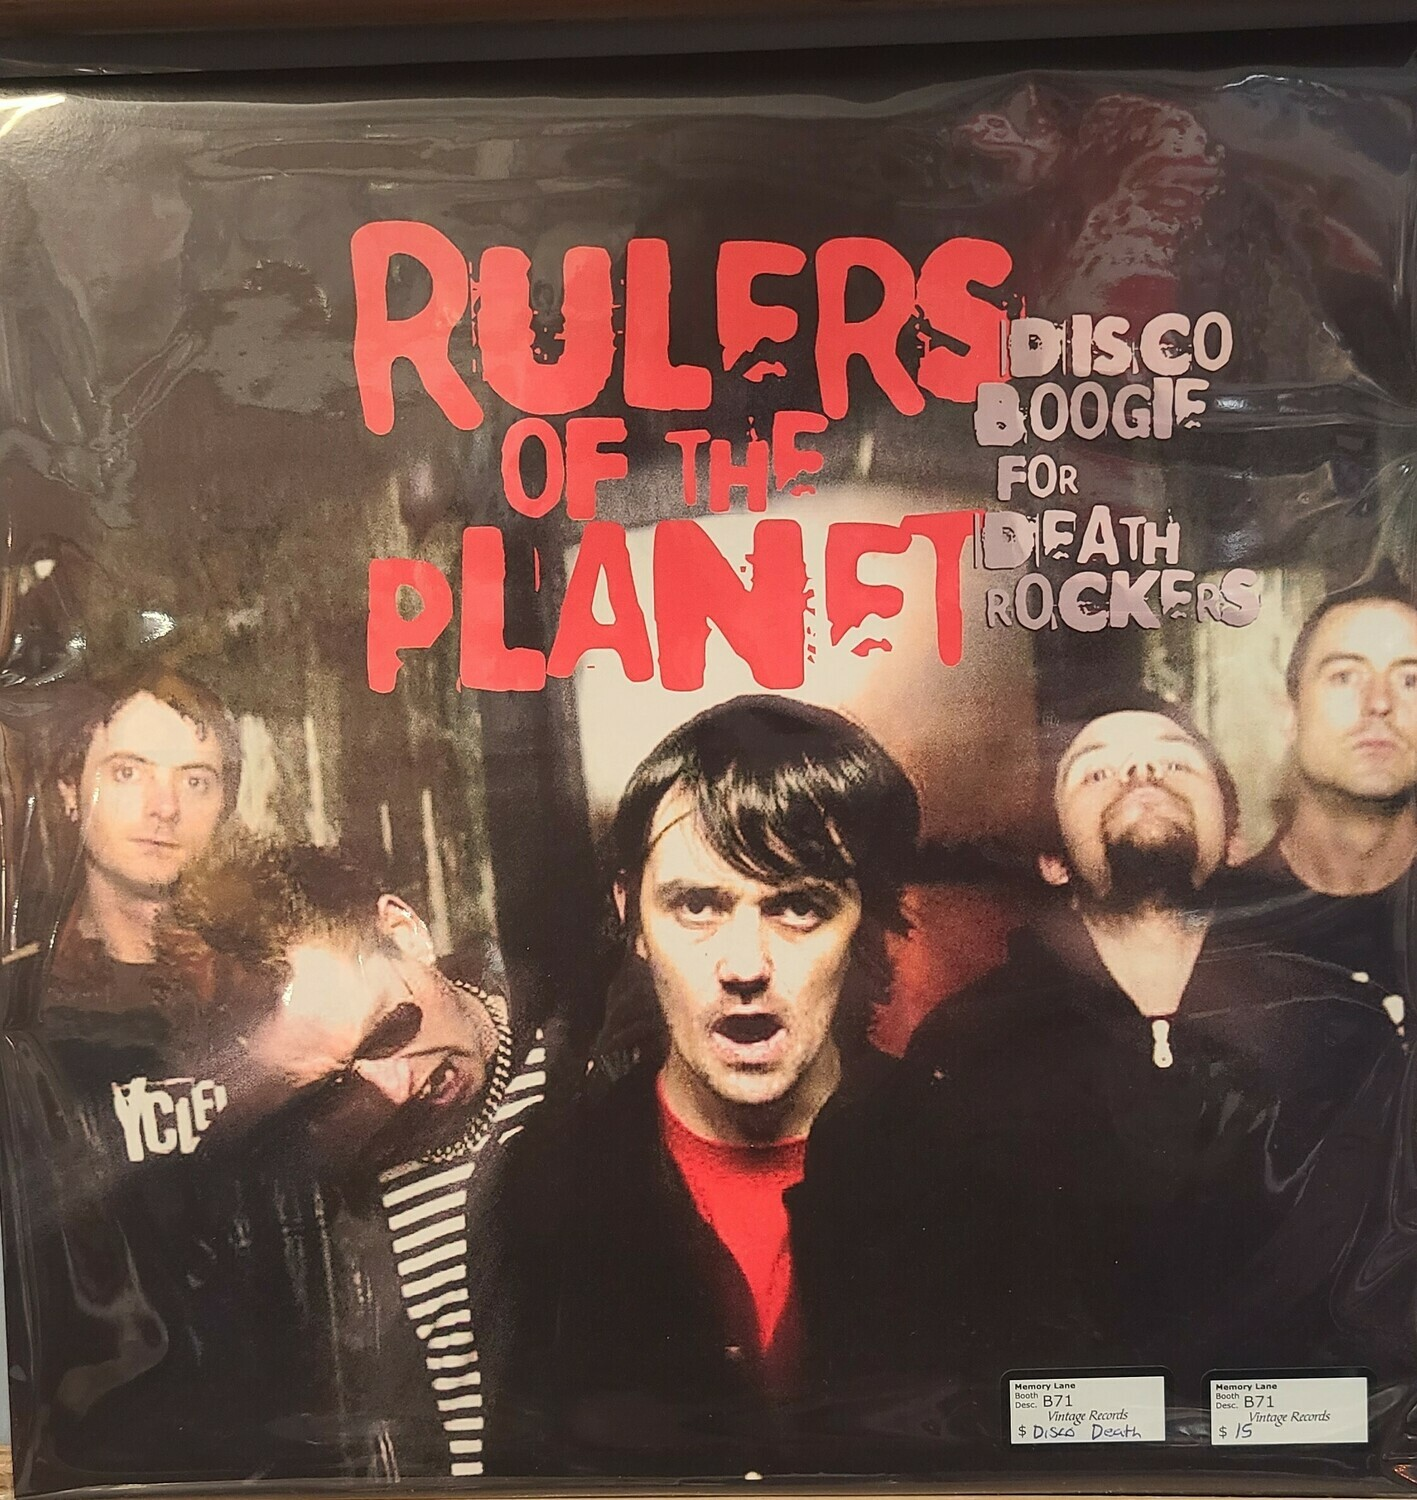 Rulers of The Planet - LP - Disco Boogie for death Rockers